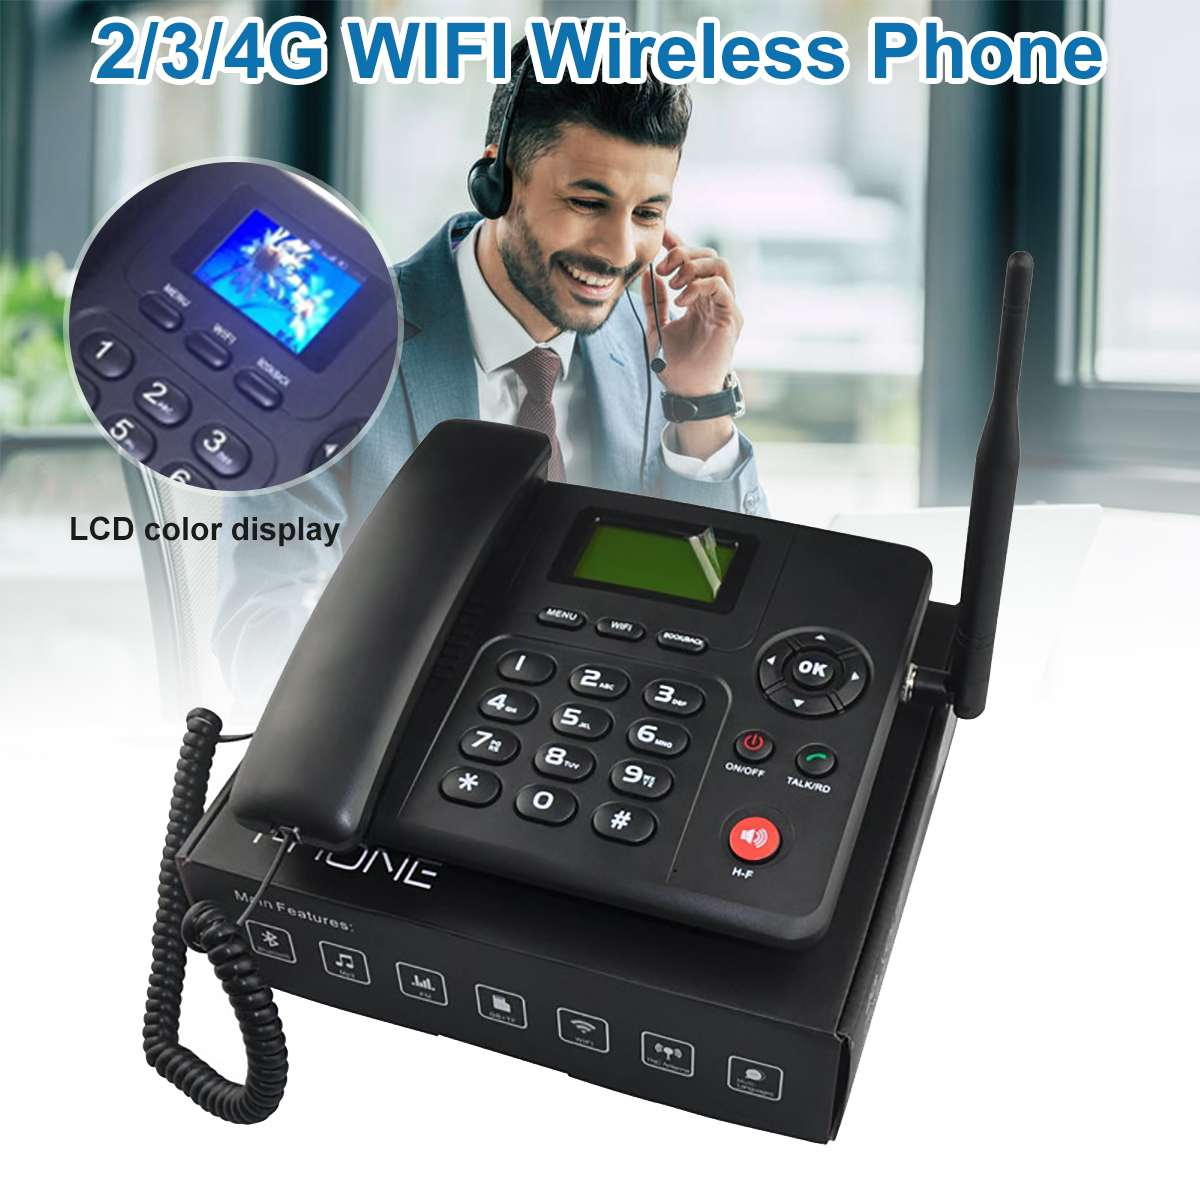 4G WIFI Wireless Fixed Phone Desktop Telephone GSM SIM Card LCD For Office Home Call Center Company Hotel EU/US/UK/AU Plug